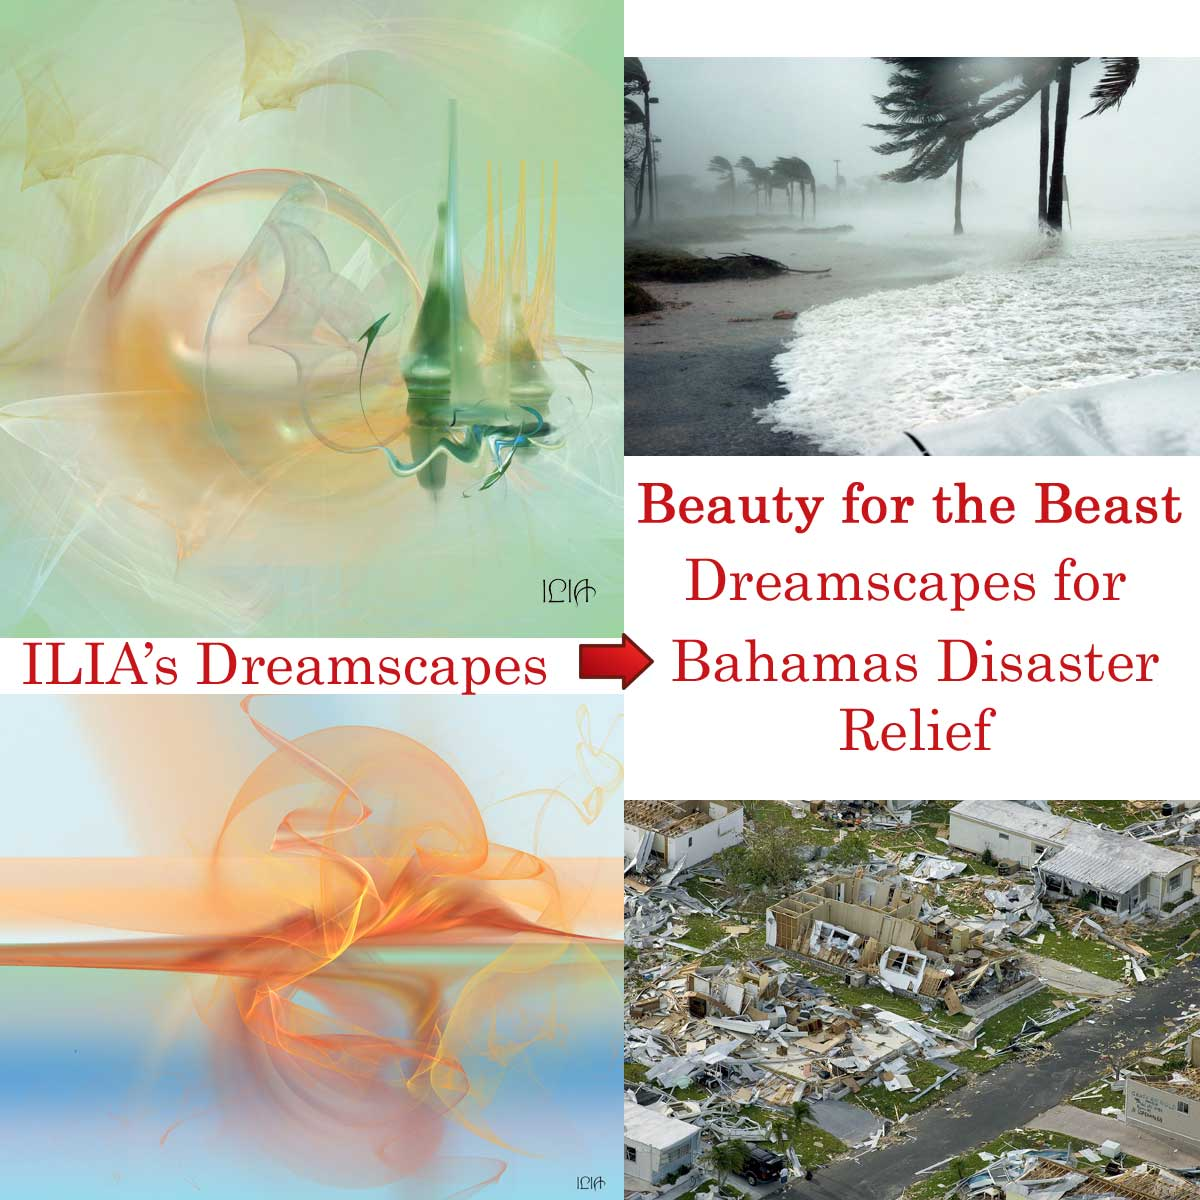 ILIA's Dreasmcapes are being used to help raise funds for the Bahamas Disaster Relief after Hurricane Dorian